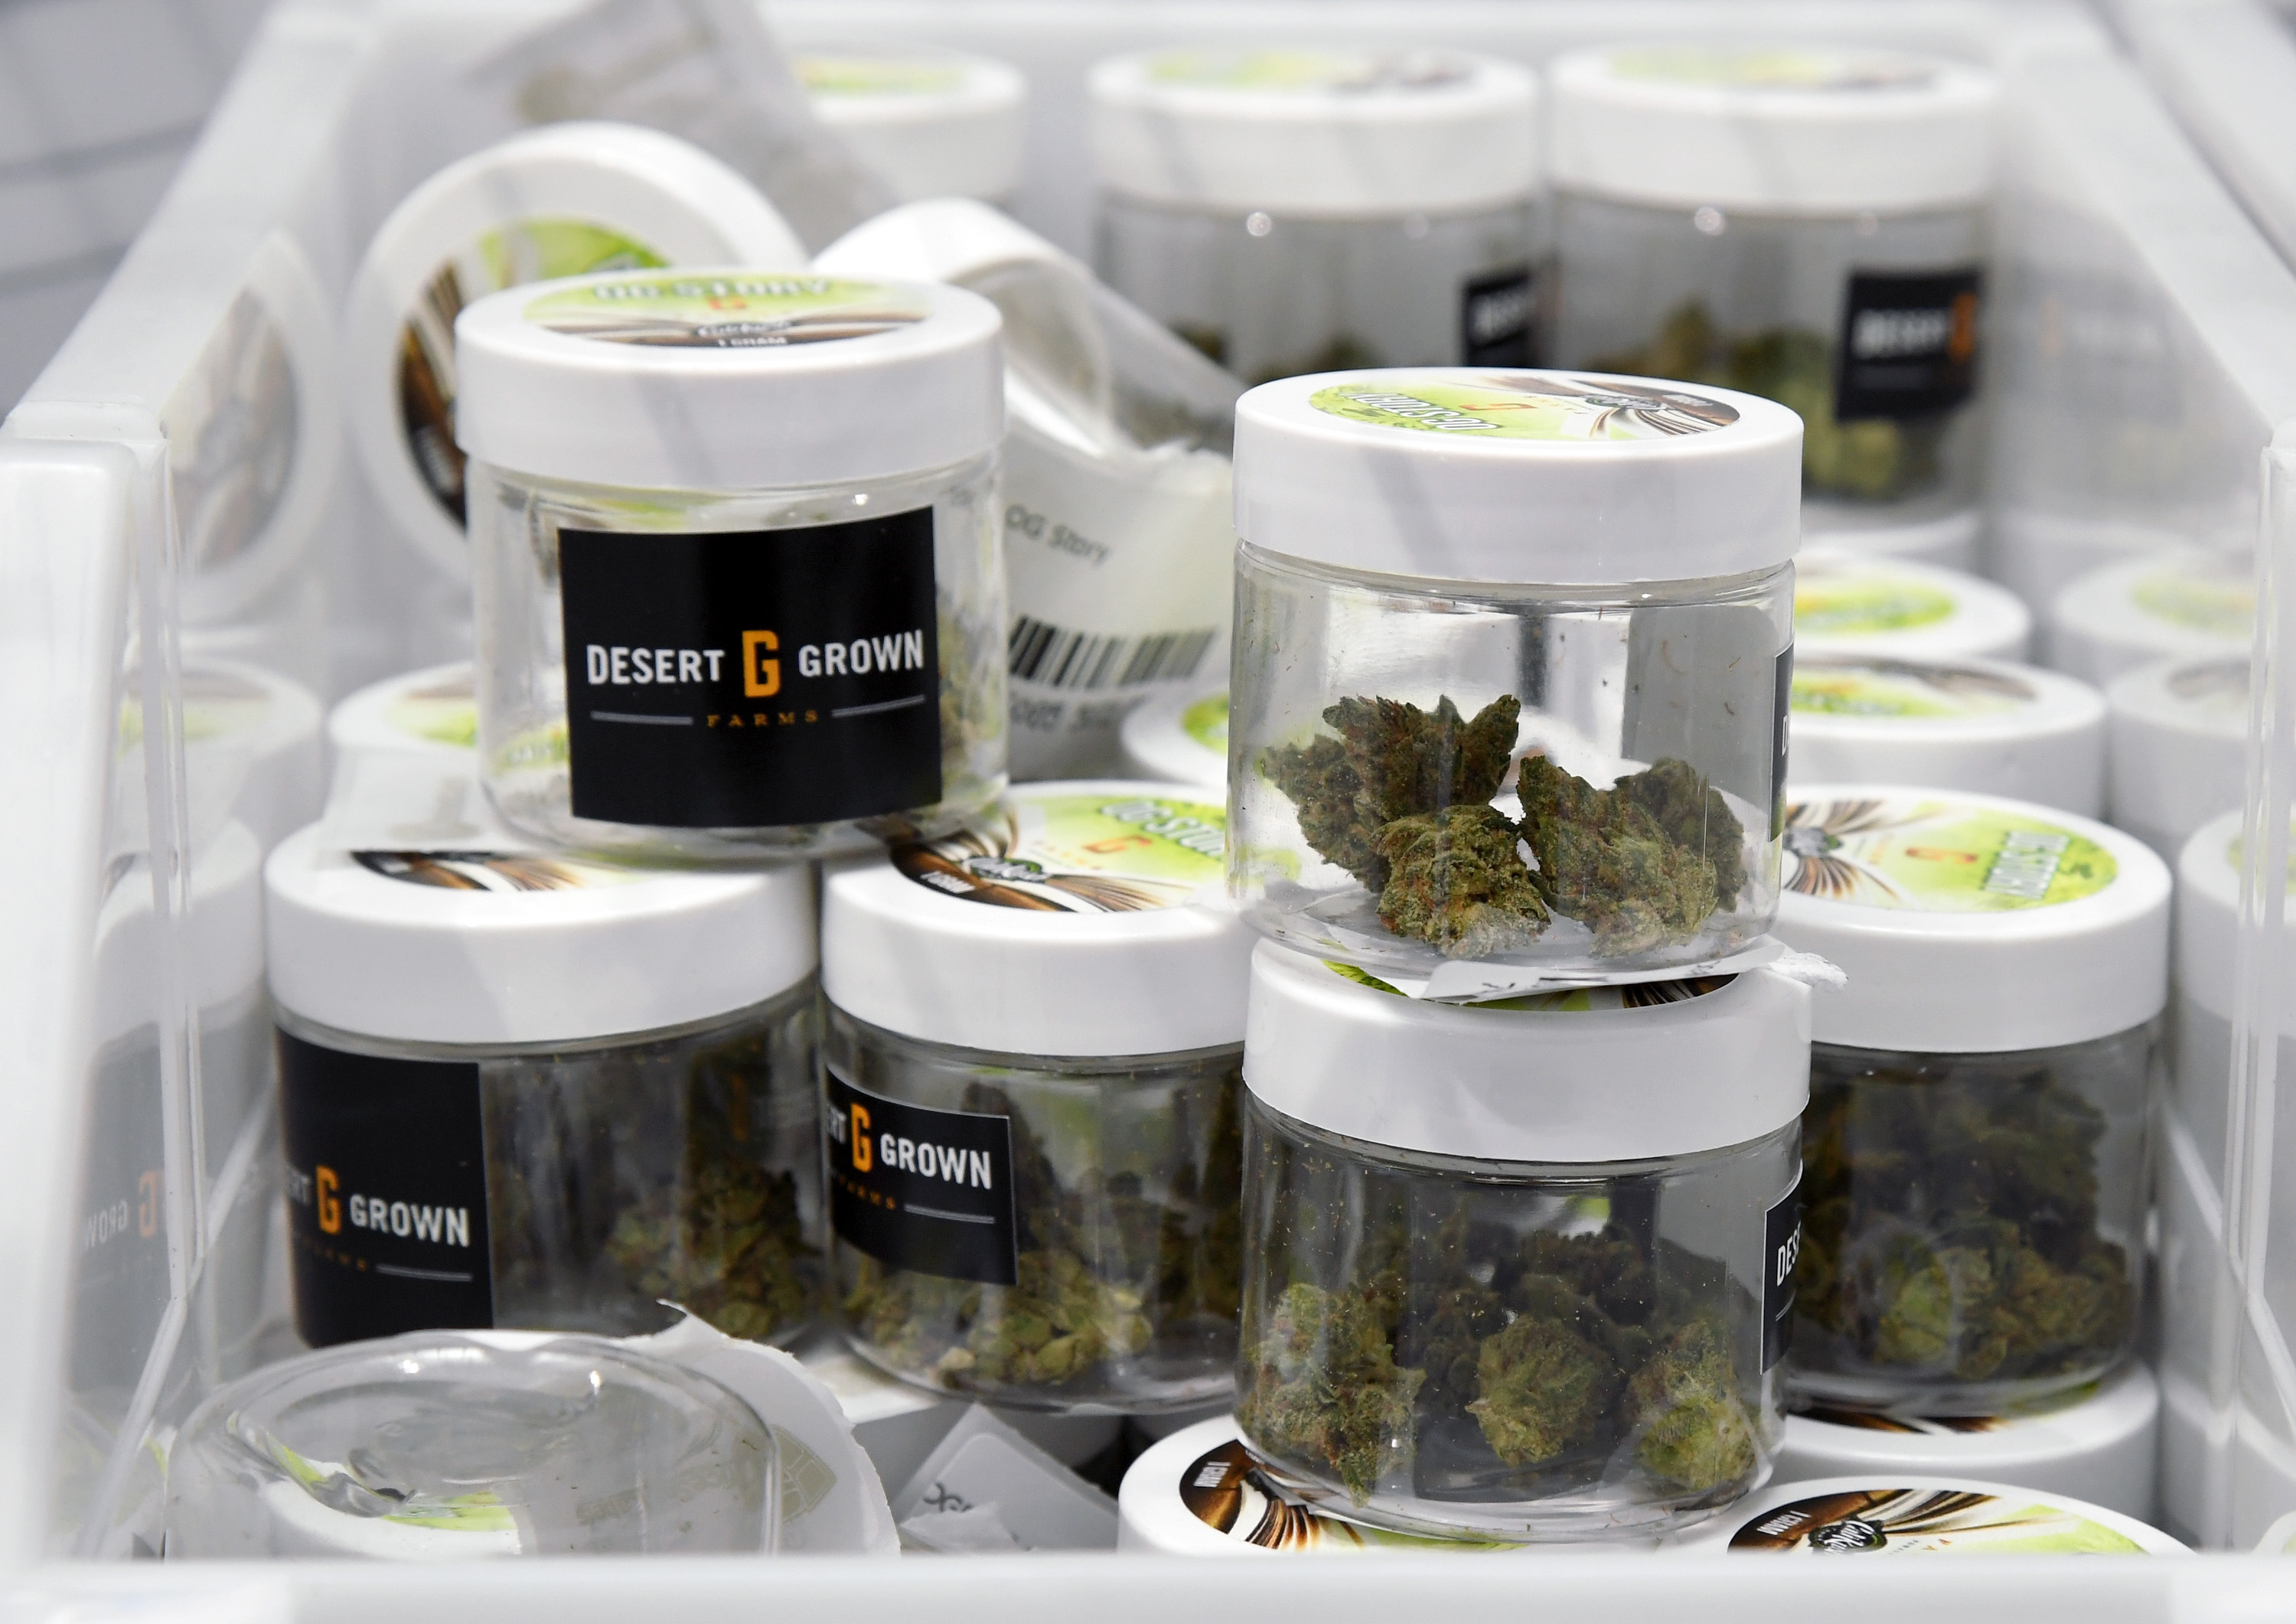 Cannabis is displayed at Essence Vegas Cannabis Dispensary before the midnight start of recreational marijuana sales on June 30, 2017 in Las Vegas, Nevada.